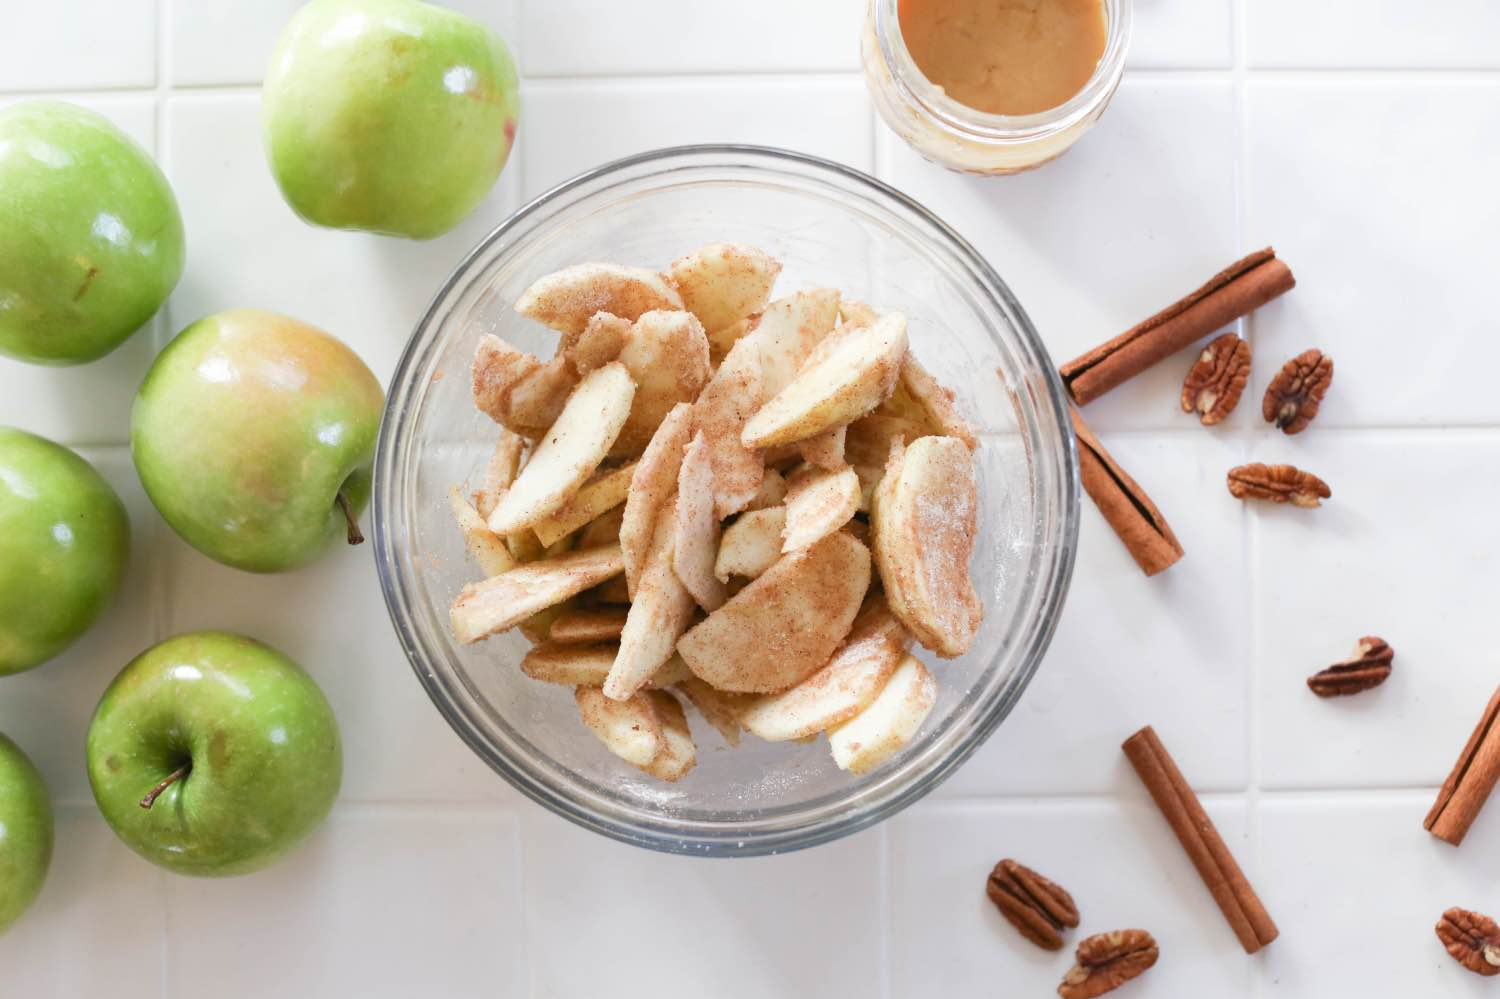 toss the apples in cinnamon and sugar apple crisp recipe